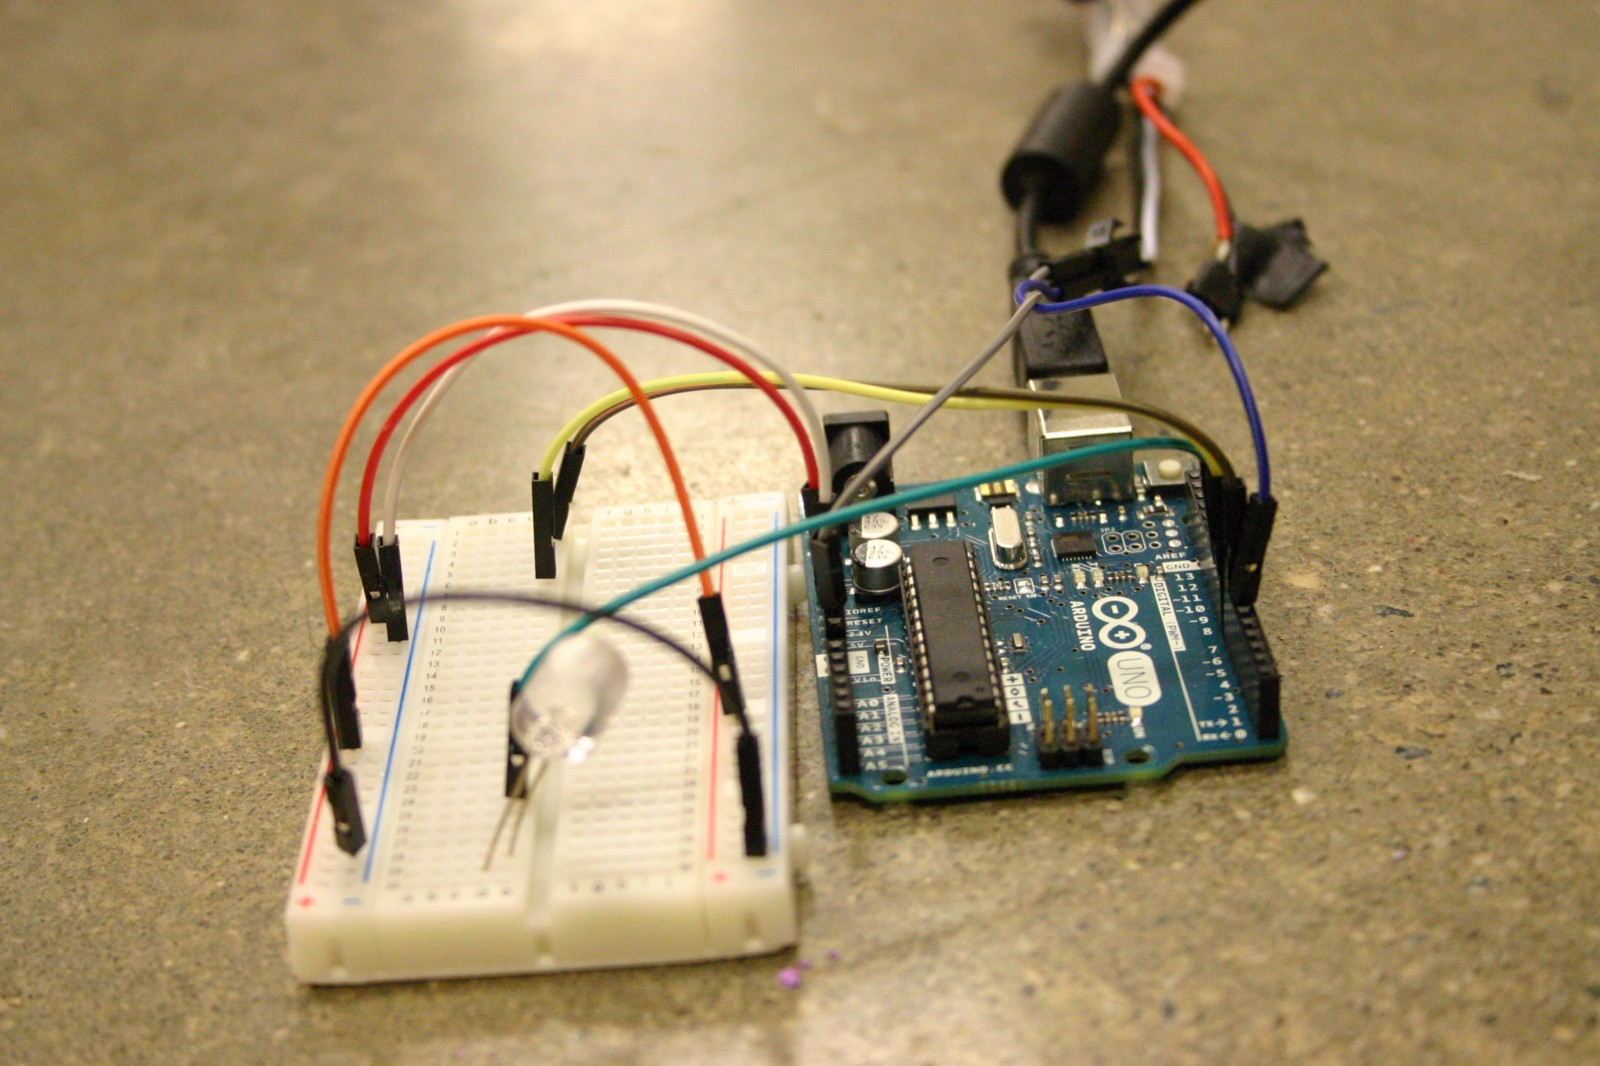 Internet of Things: Arduino Microcontroller